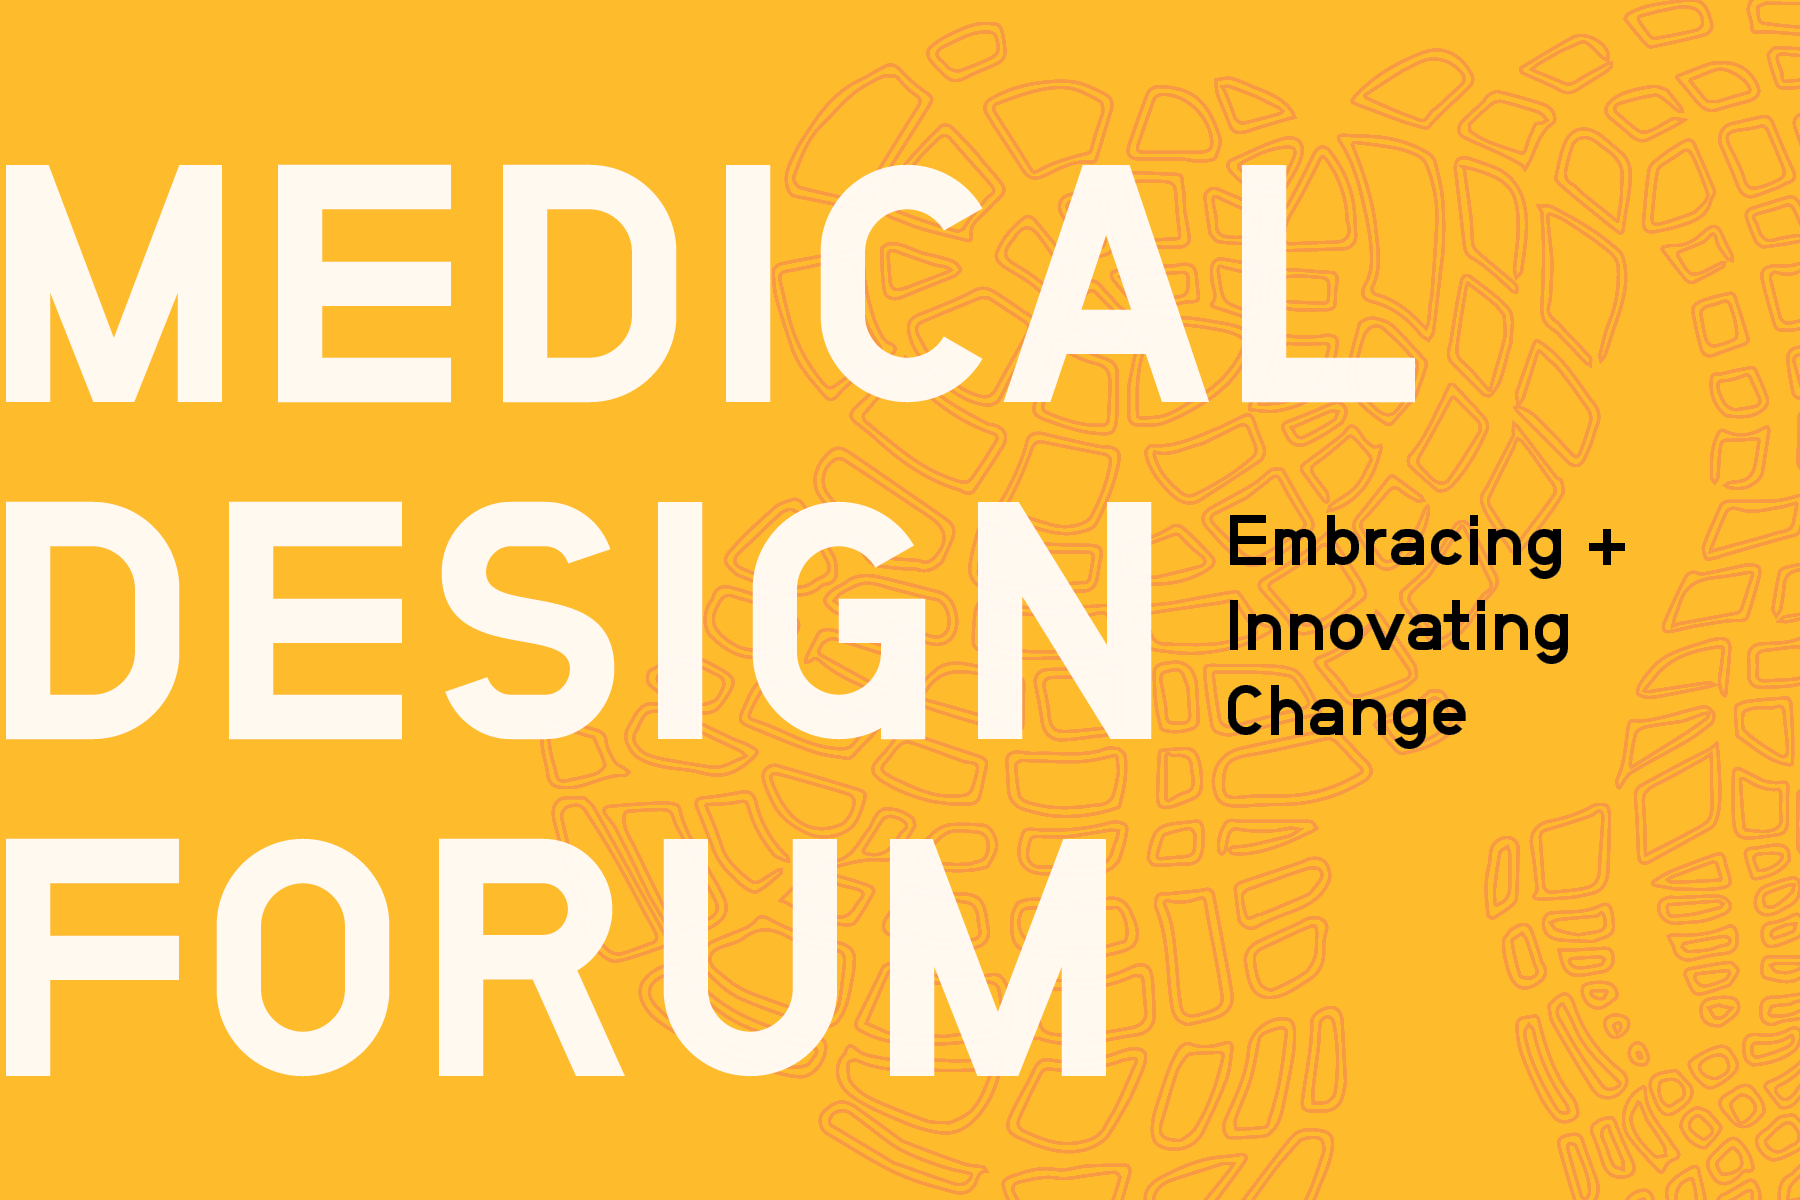 This page is intended only for participants of 2019 Medical Design Forum: Embracing & Innovating Change